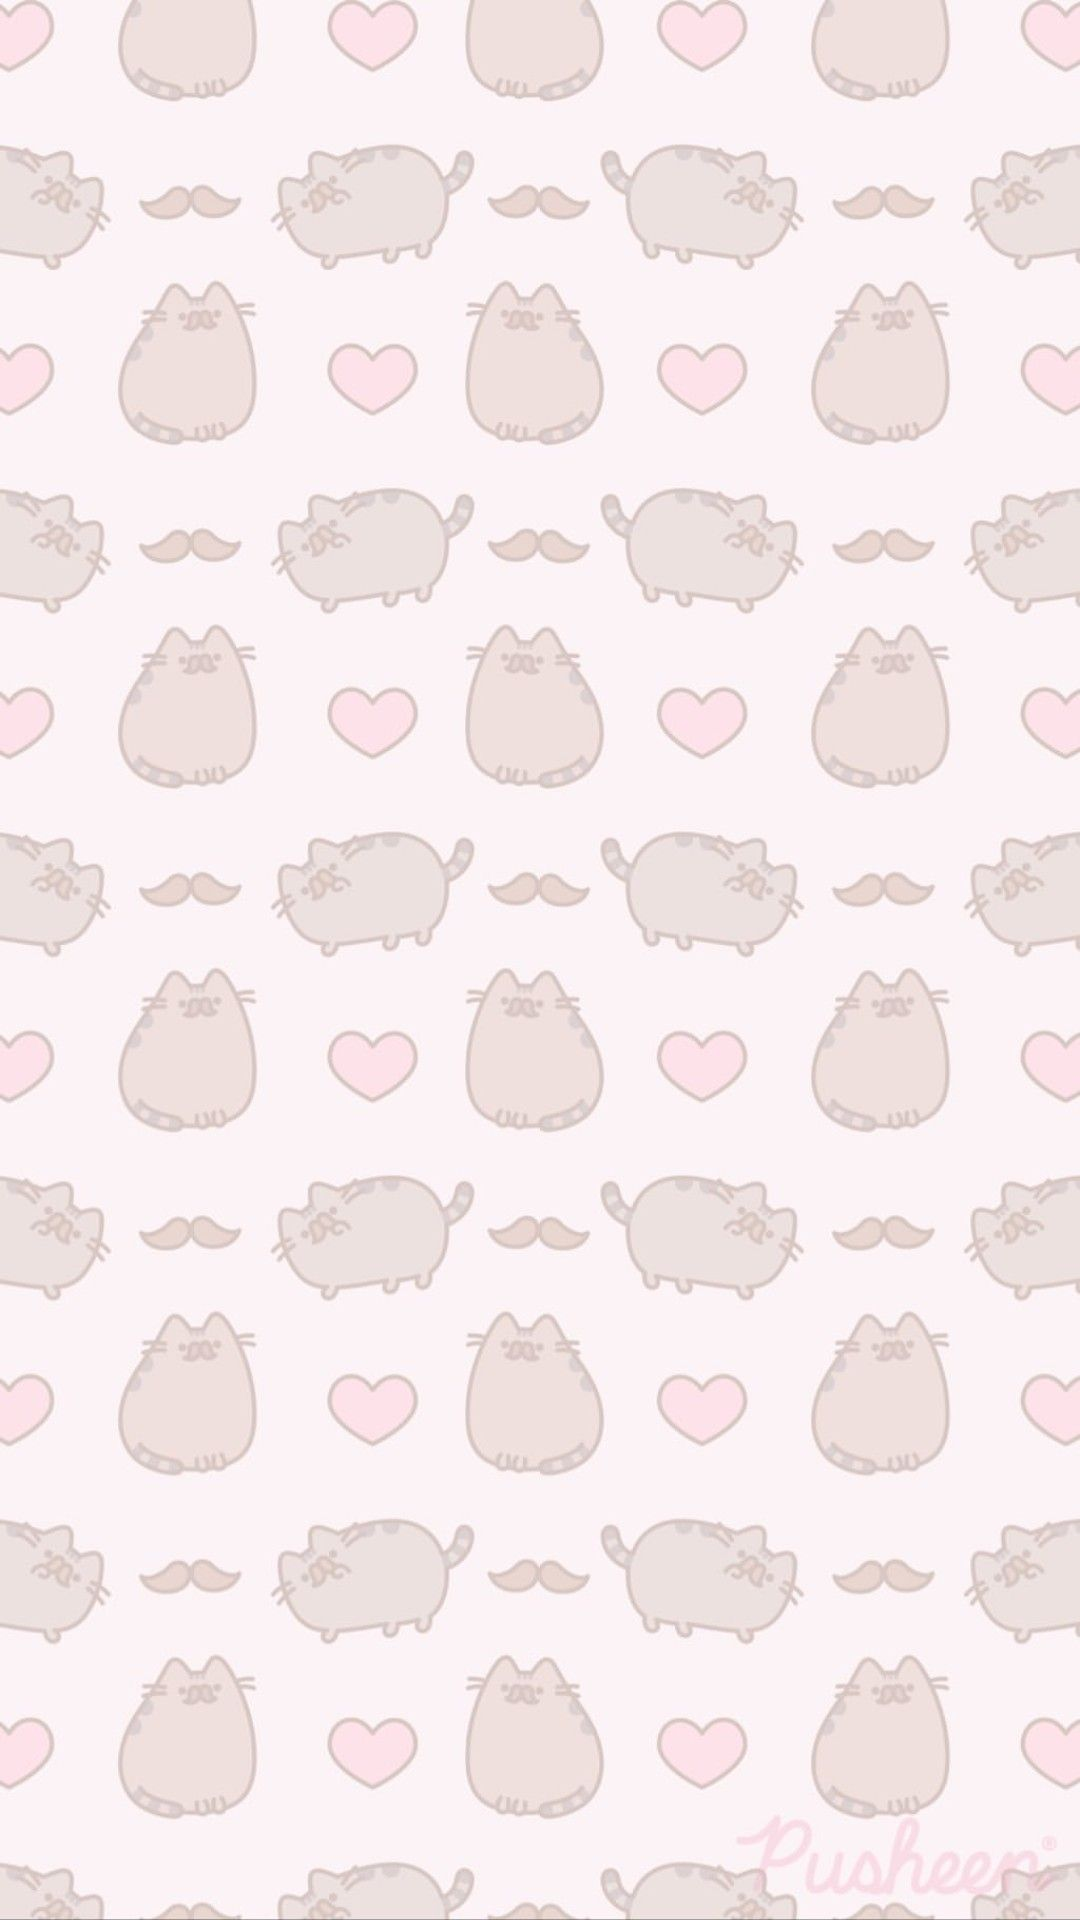 Pin by Licho w bamboszkach on Pusheen With images Pusheen cute 1080x1920